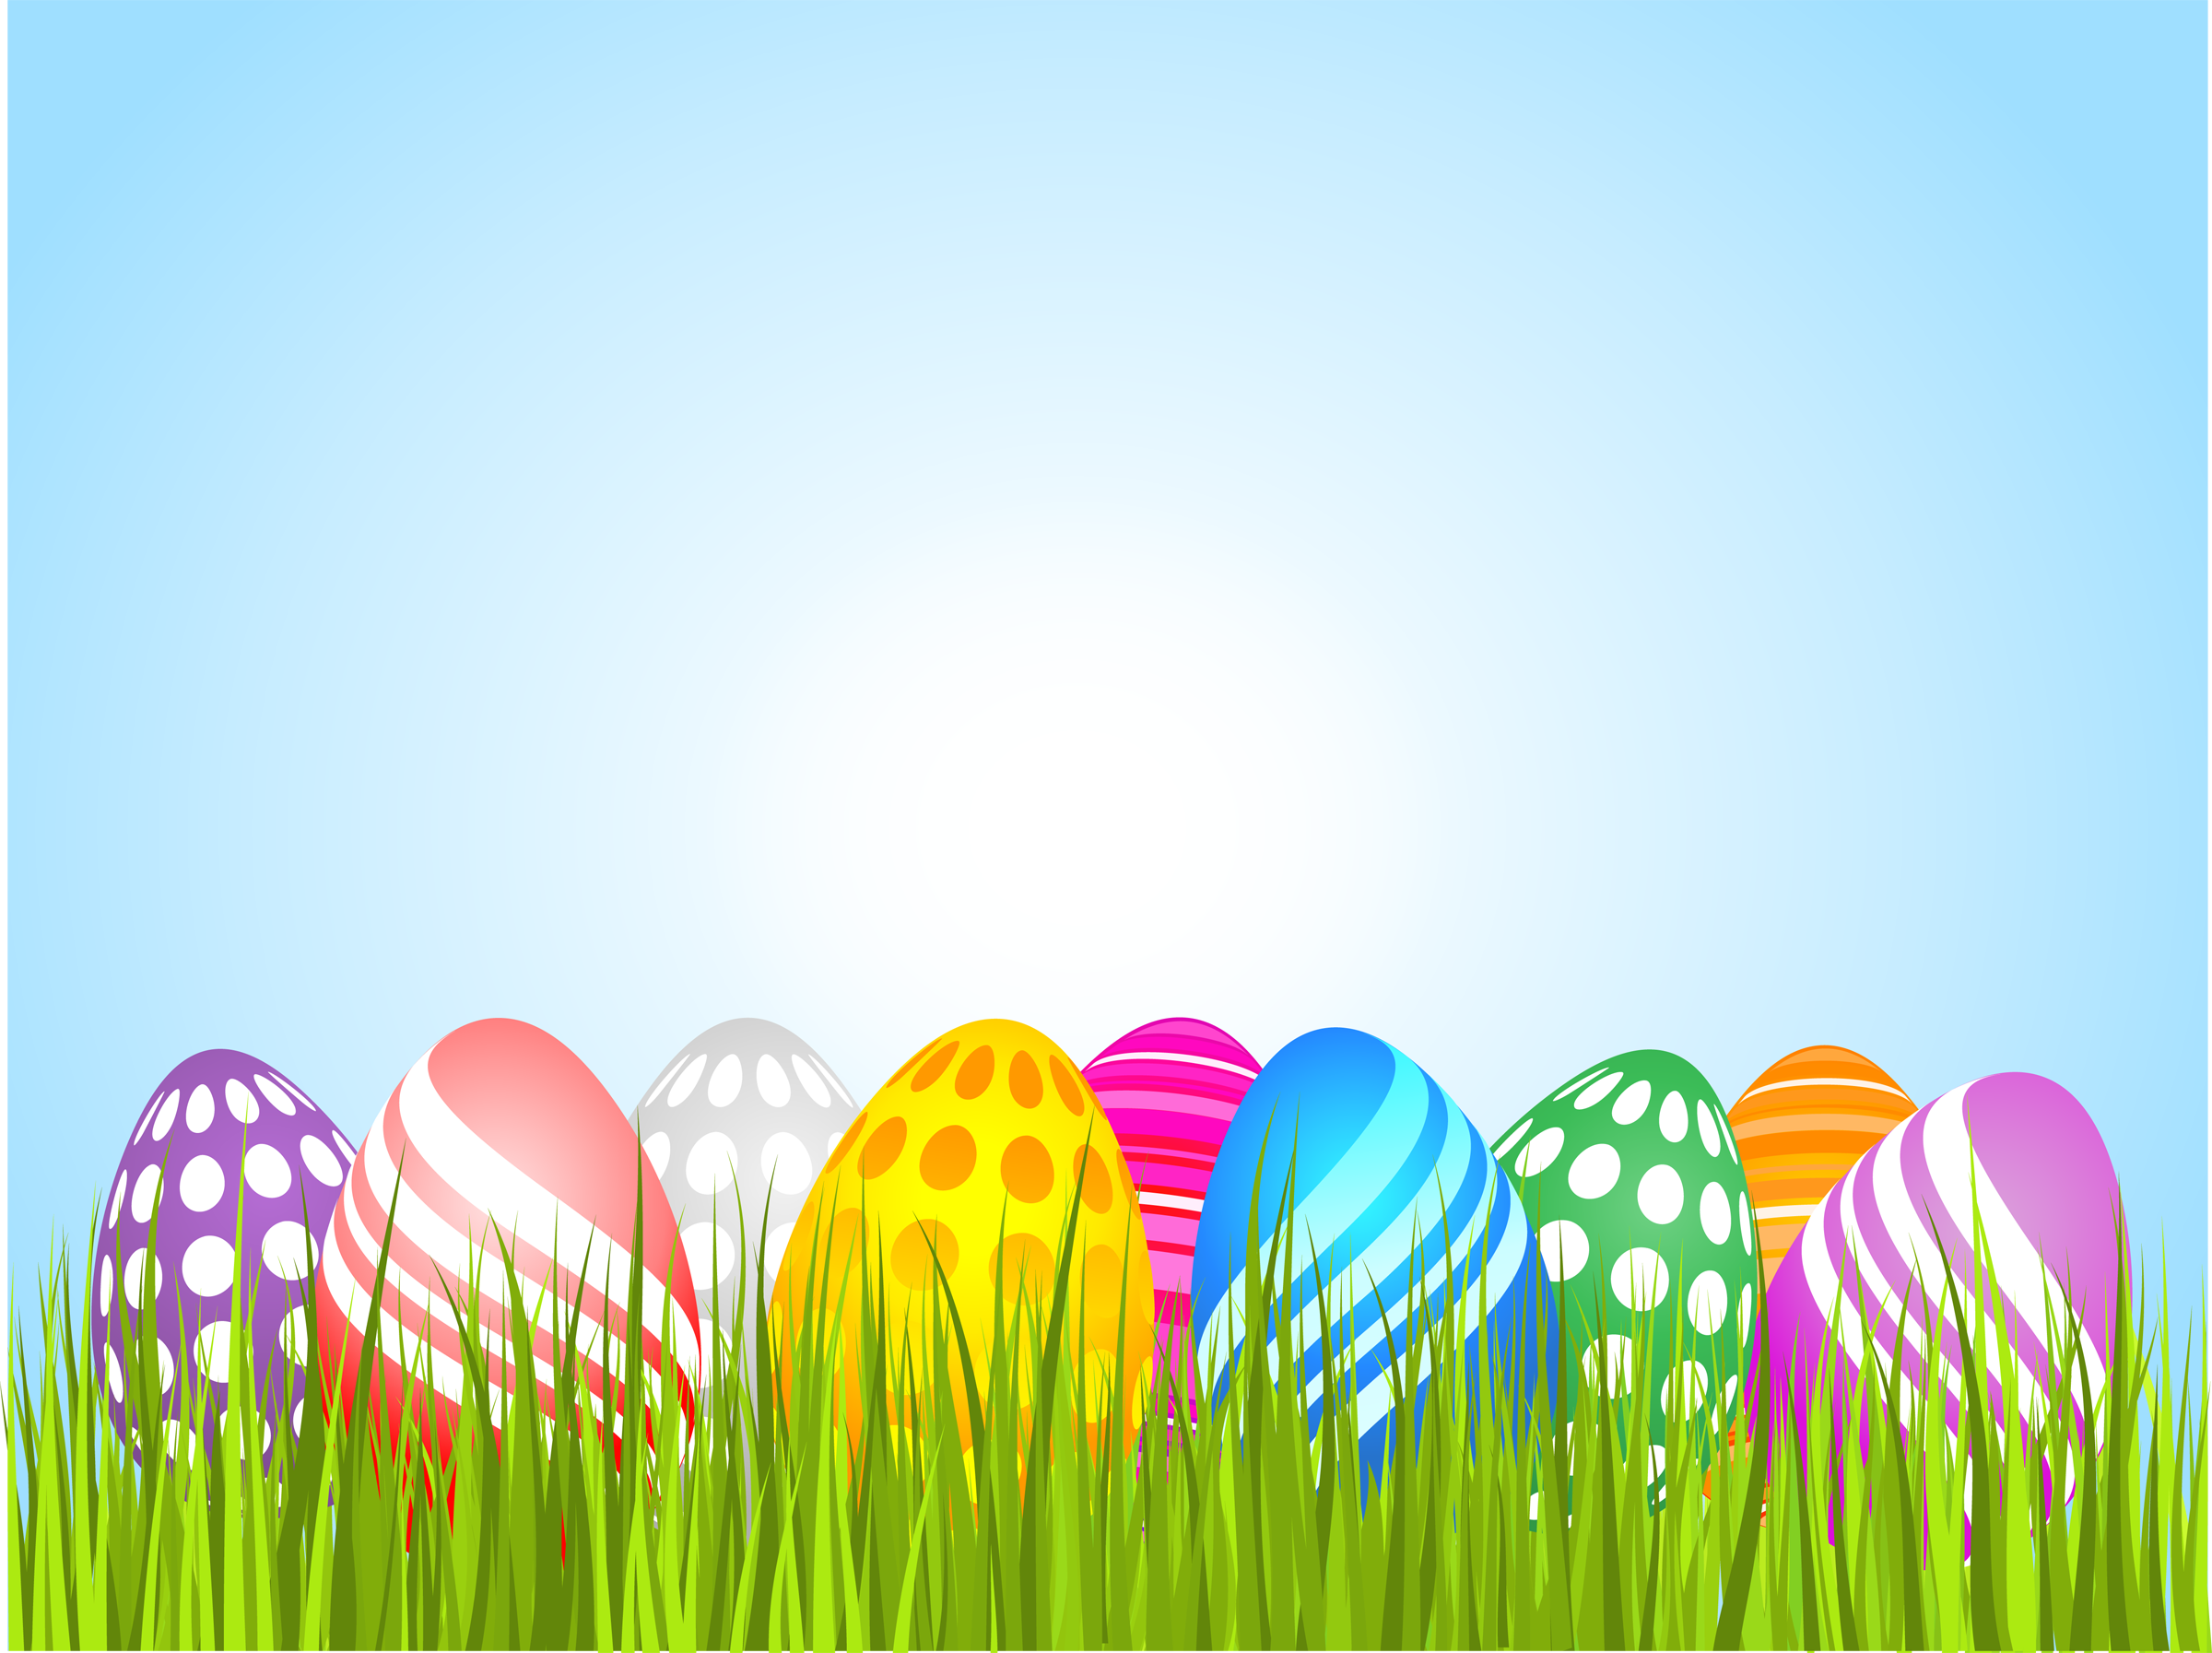 Google free clipart easter egg hunt vector library Easter egg hunt clipart border - ClipartFest vector library